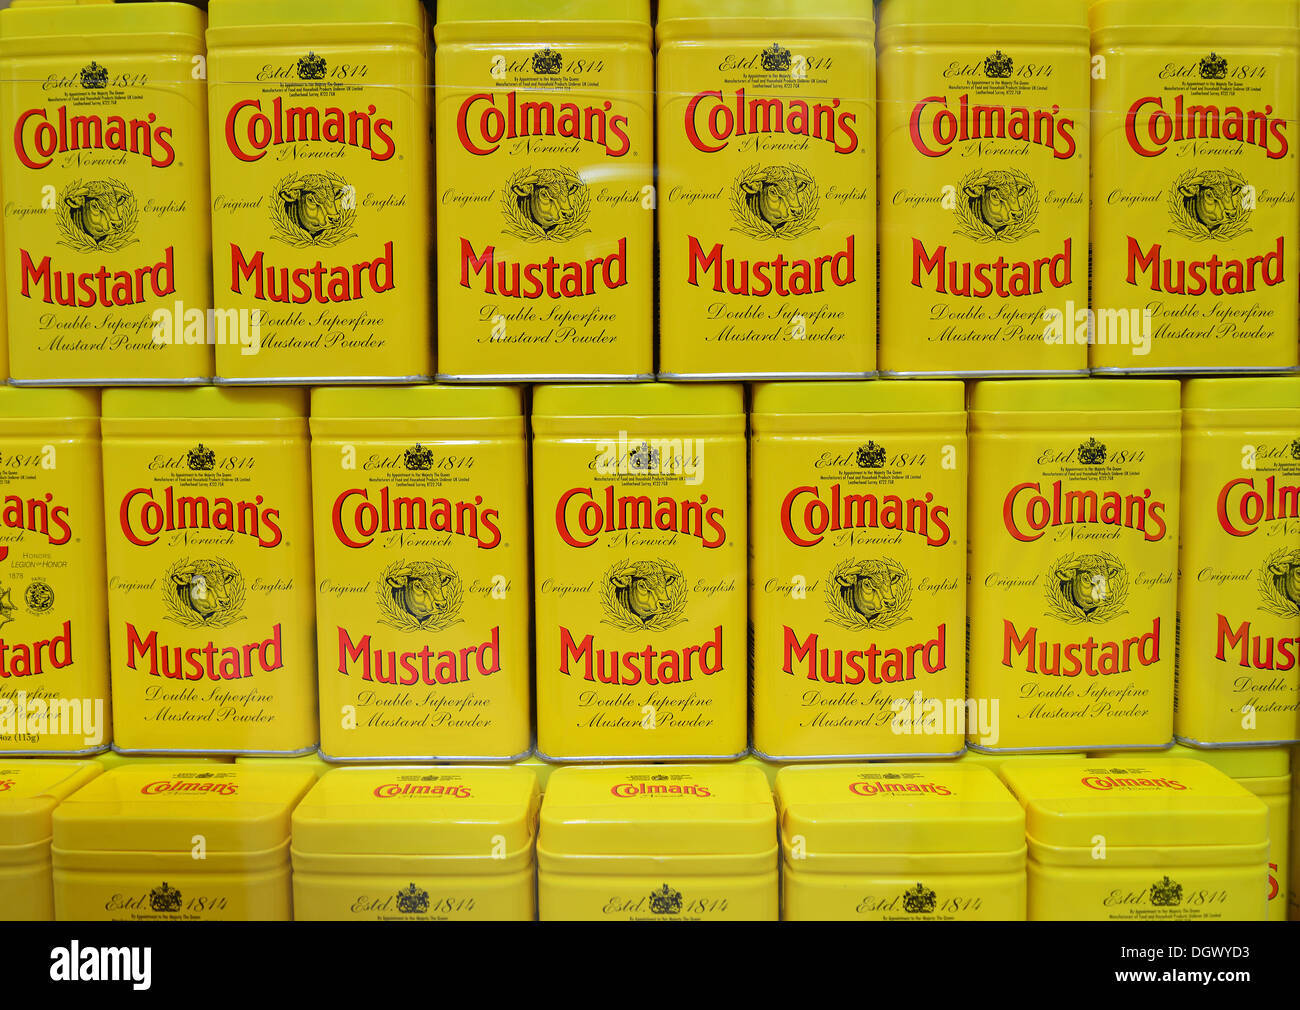 Cans of Colman Mustard in window of Colman's Mustard Shop & Museum, The Royal Arcade, Norwich, Norfolk, England, Stock Photo